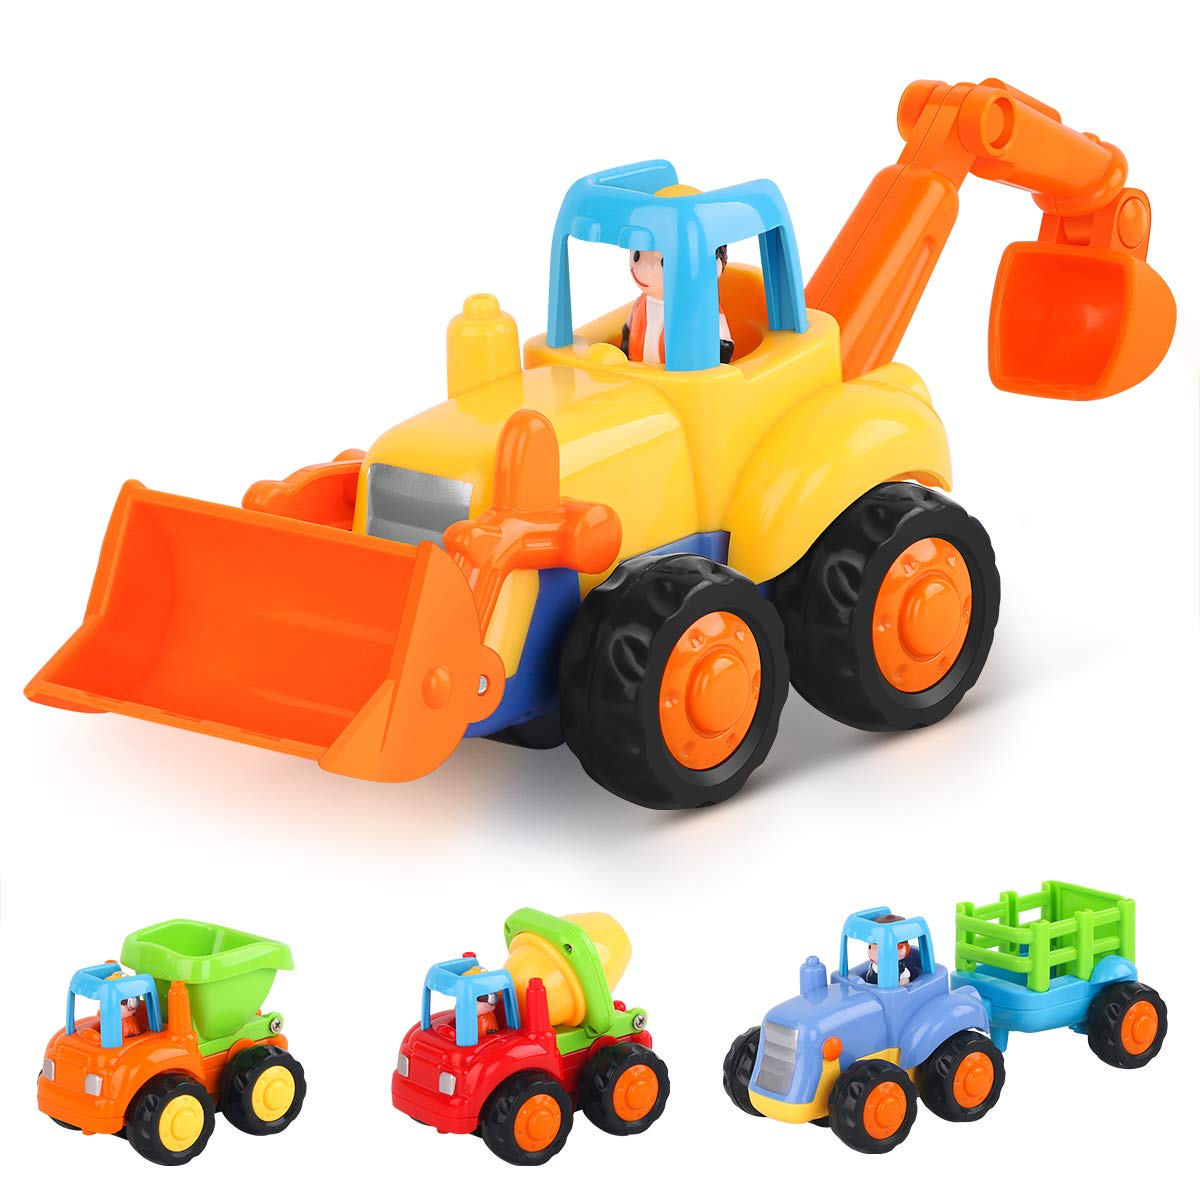 LIDODO Friction Powered Cars Push Go Car Construction Vehicles Toys Set of 4 Toddlers Dump Truck Cement Mixer Bulldozer Tractor Back Cartoon Play Kids car toys